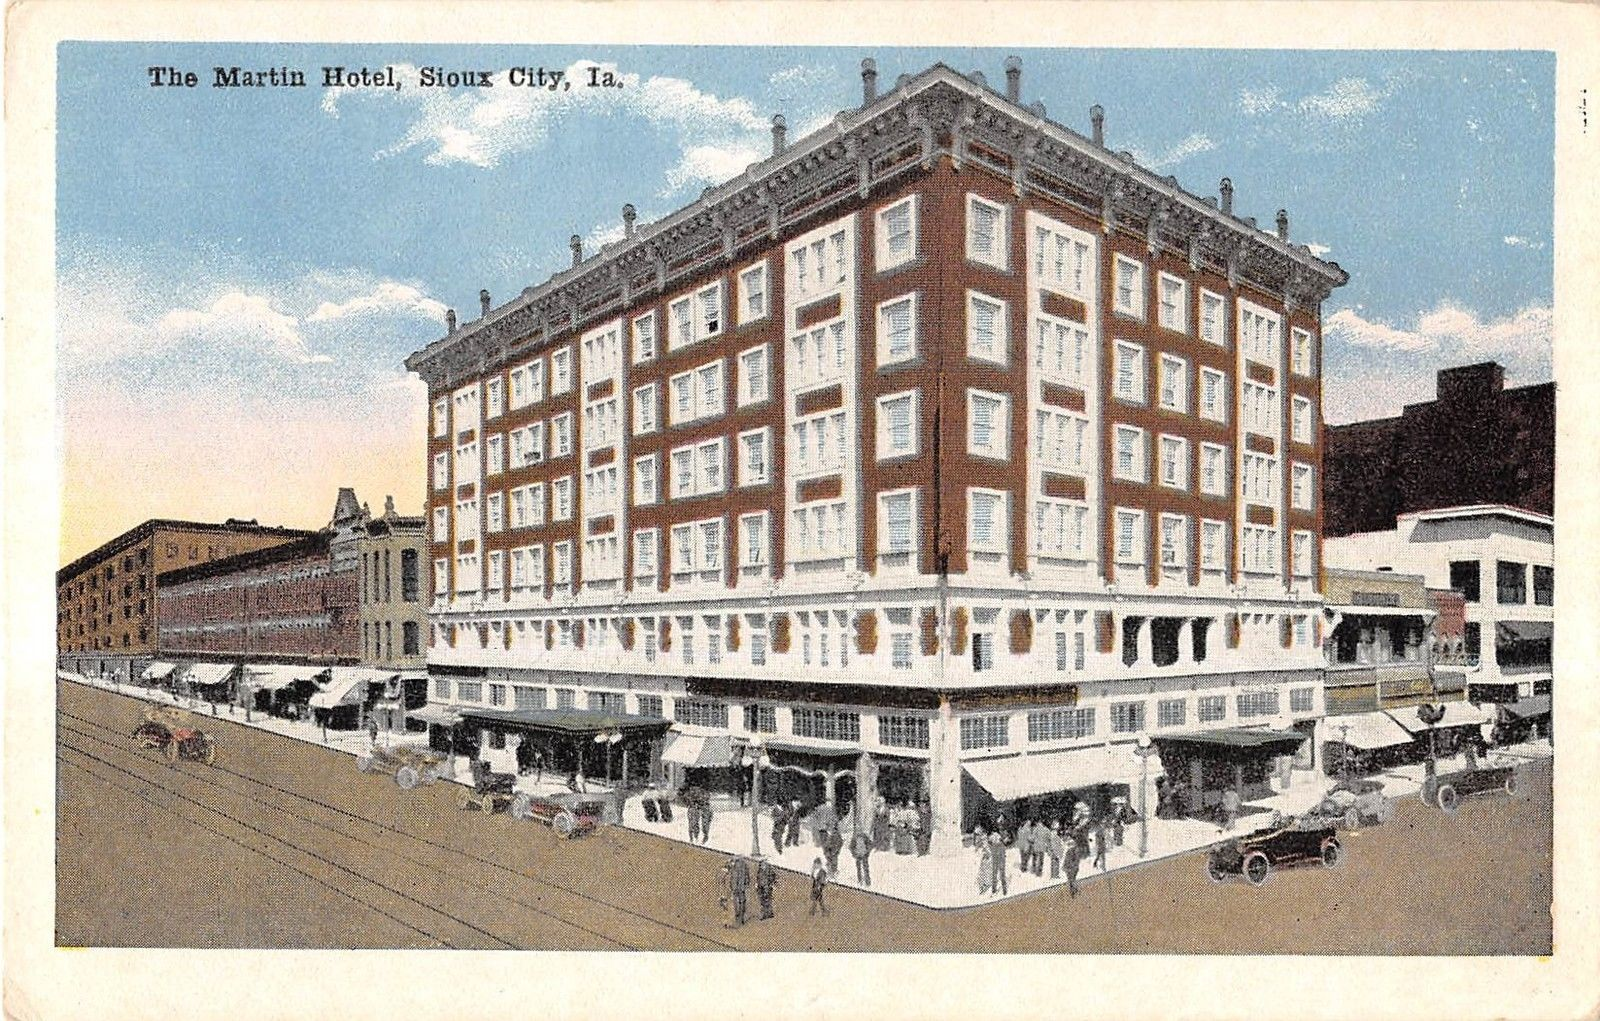 Sioux city iowa the martin hotel general exterior view for Craft stores in sioux city iowa